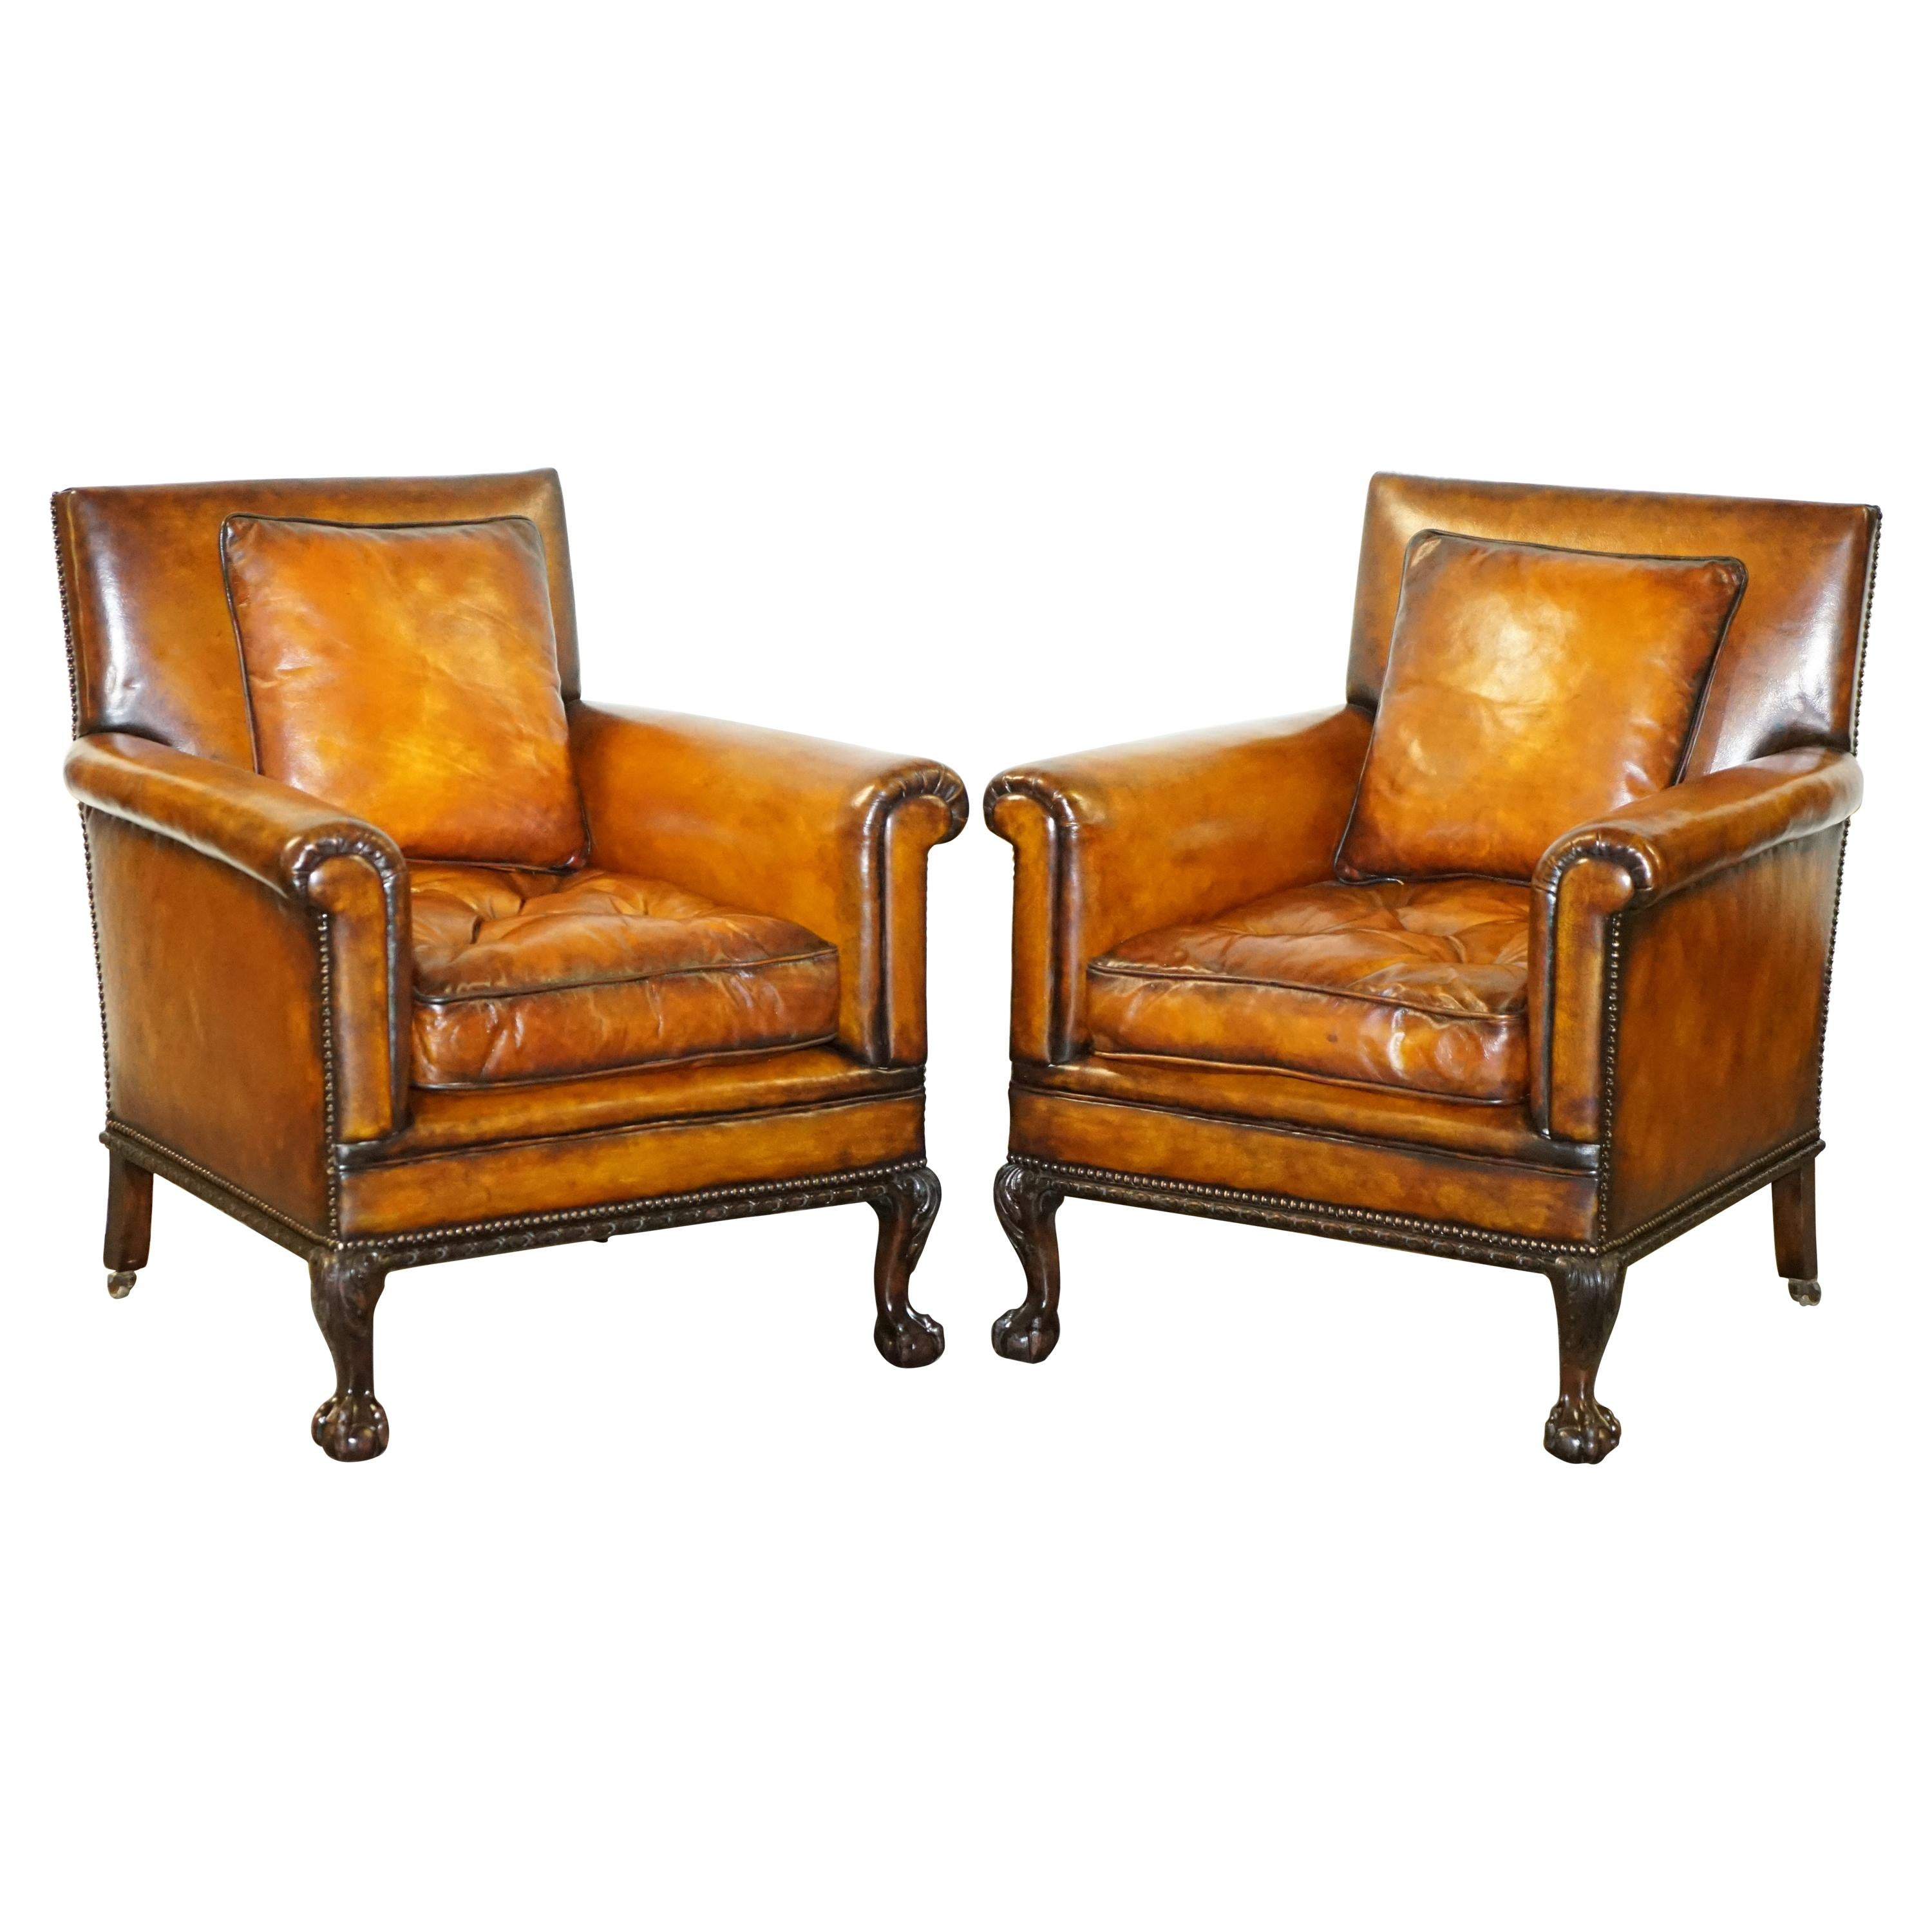 Phenomenal Antique And Vintage Club Chairs 3 087 For Sale At 1Stdibs Gmtry Best Dining Table And Chair Ideas Images Gmtryco